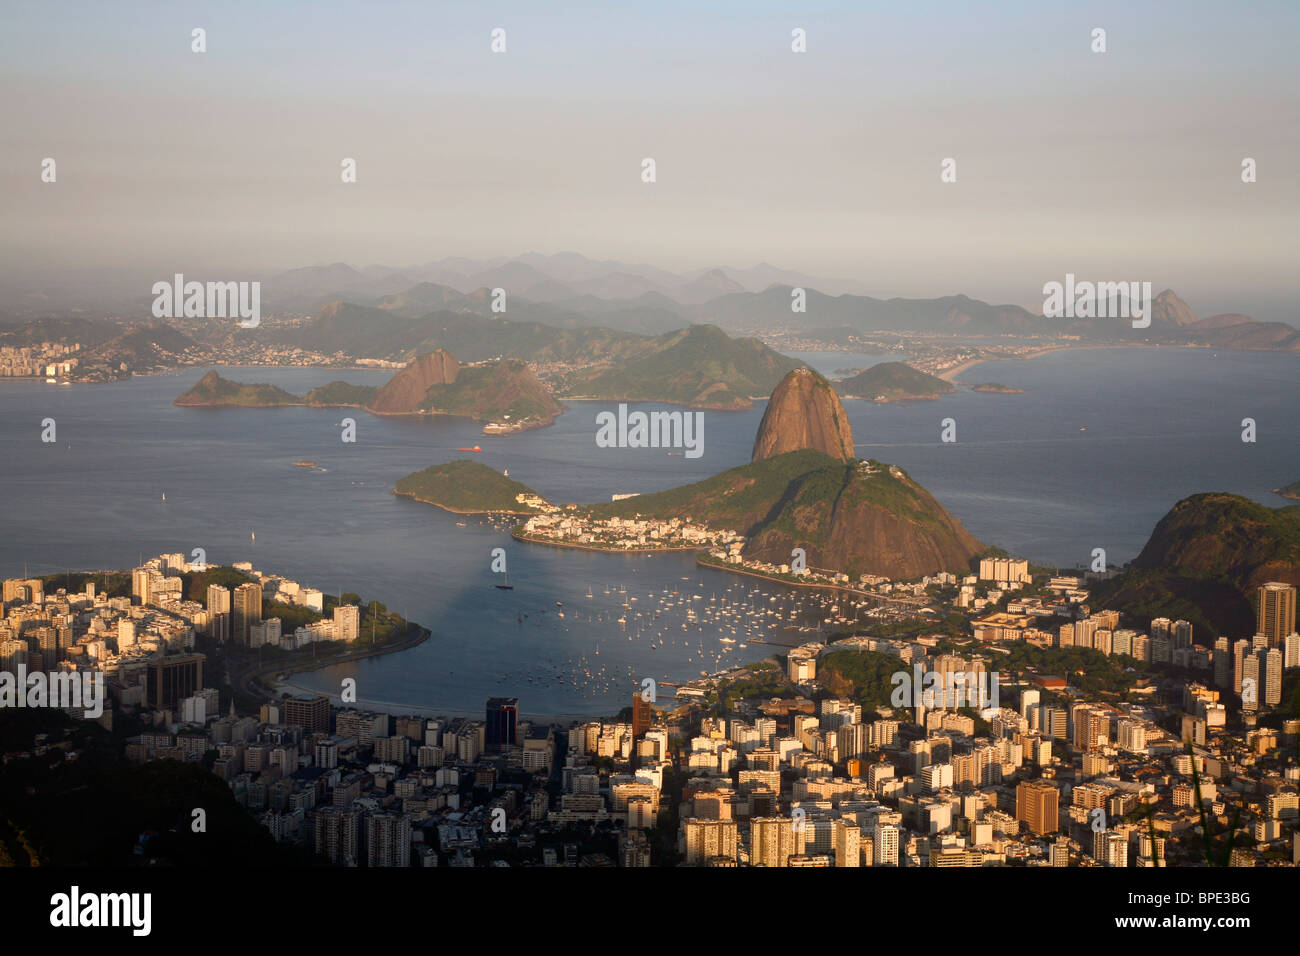 View of the Pao Acucar or Sugar loaf mountain and the bay of Botafogo, Rio de Janeiro, Brazil. - Stock Image